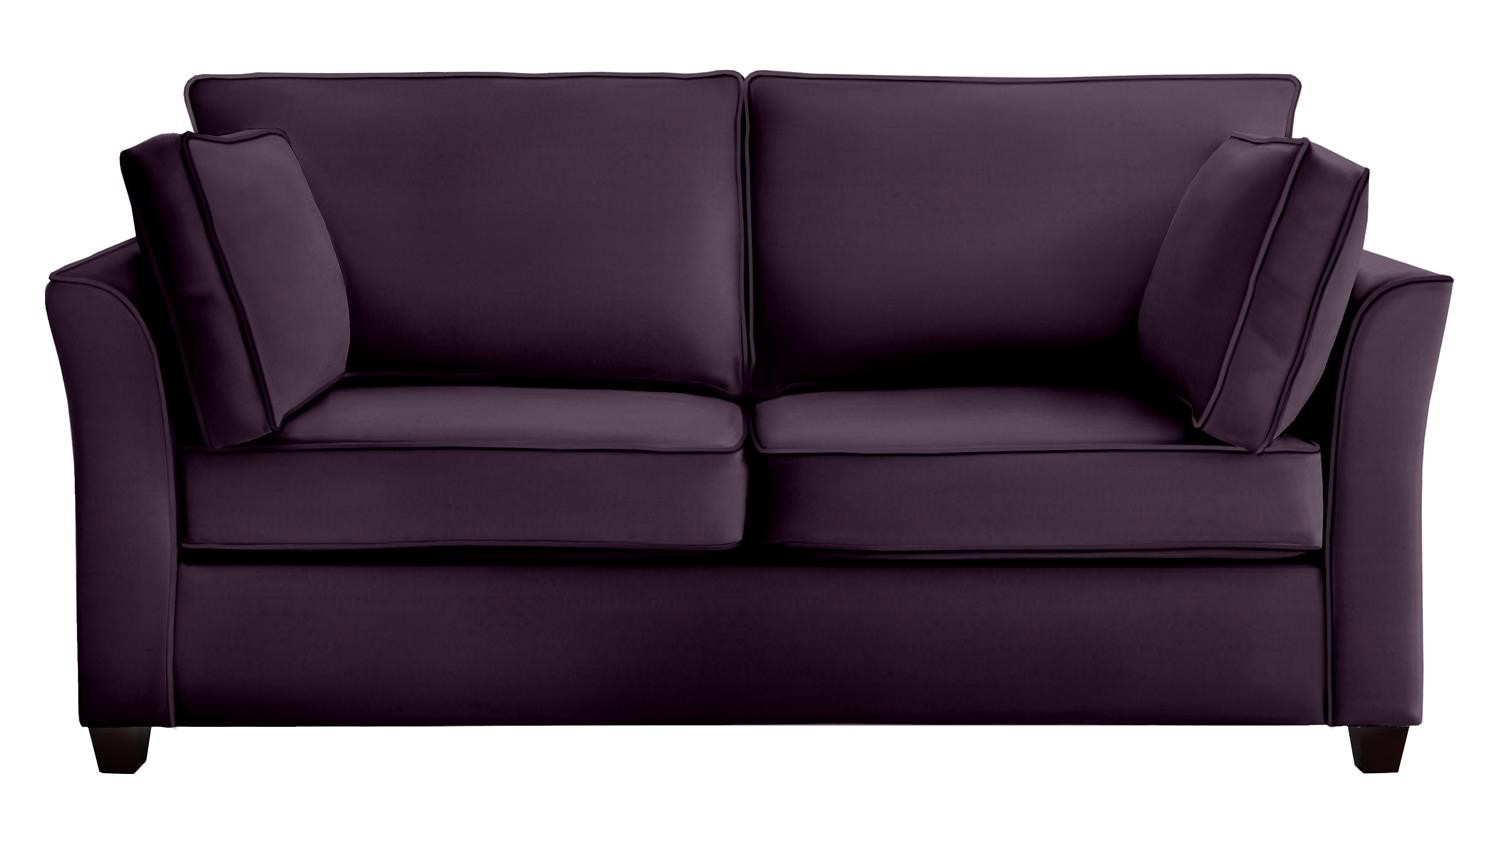 The Elmley 2 Seater Sofa Bed